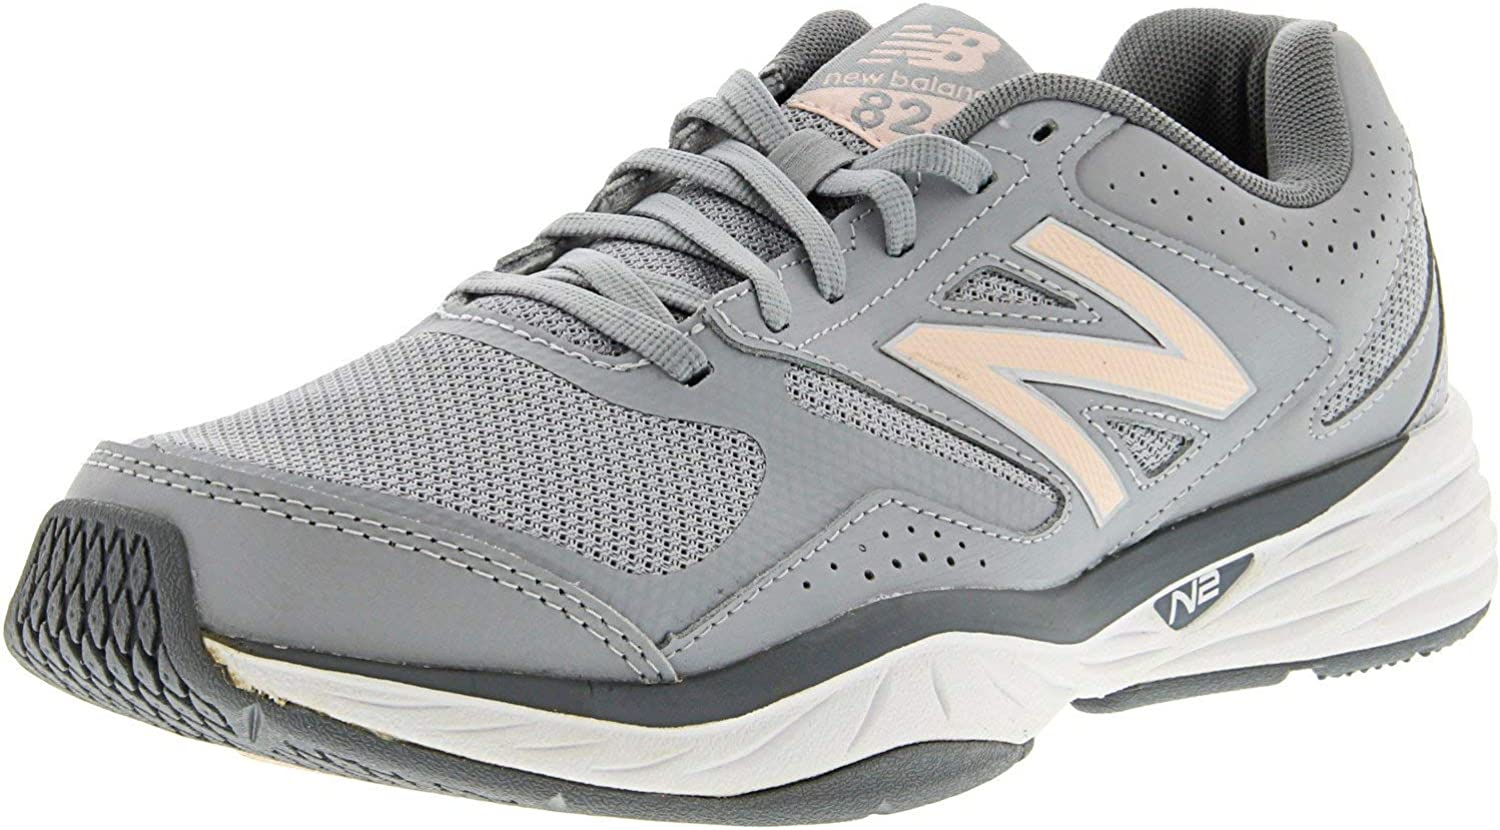 New Balance Women's Black White